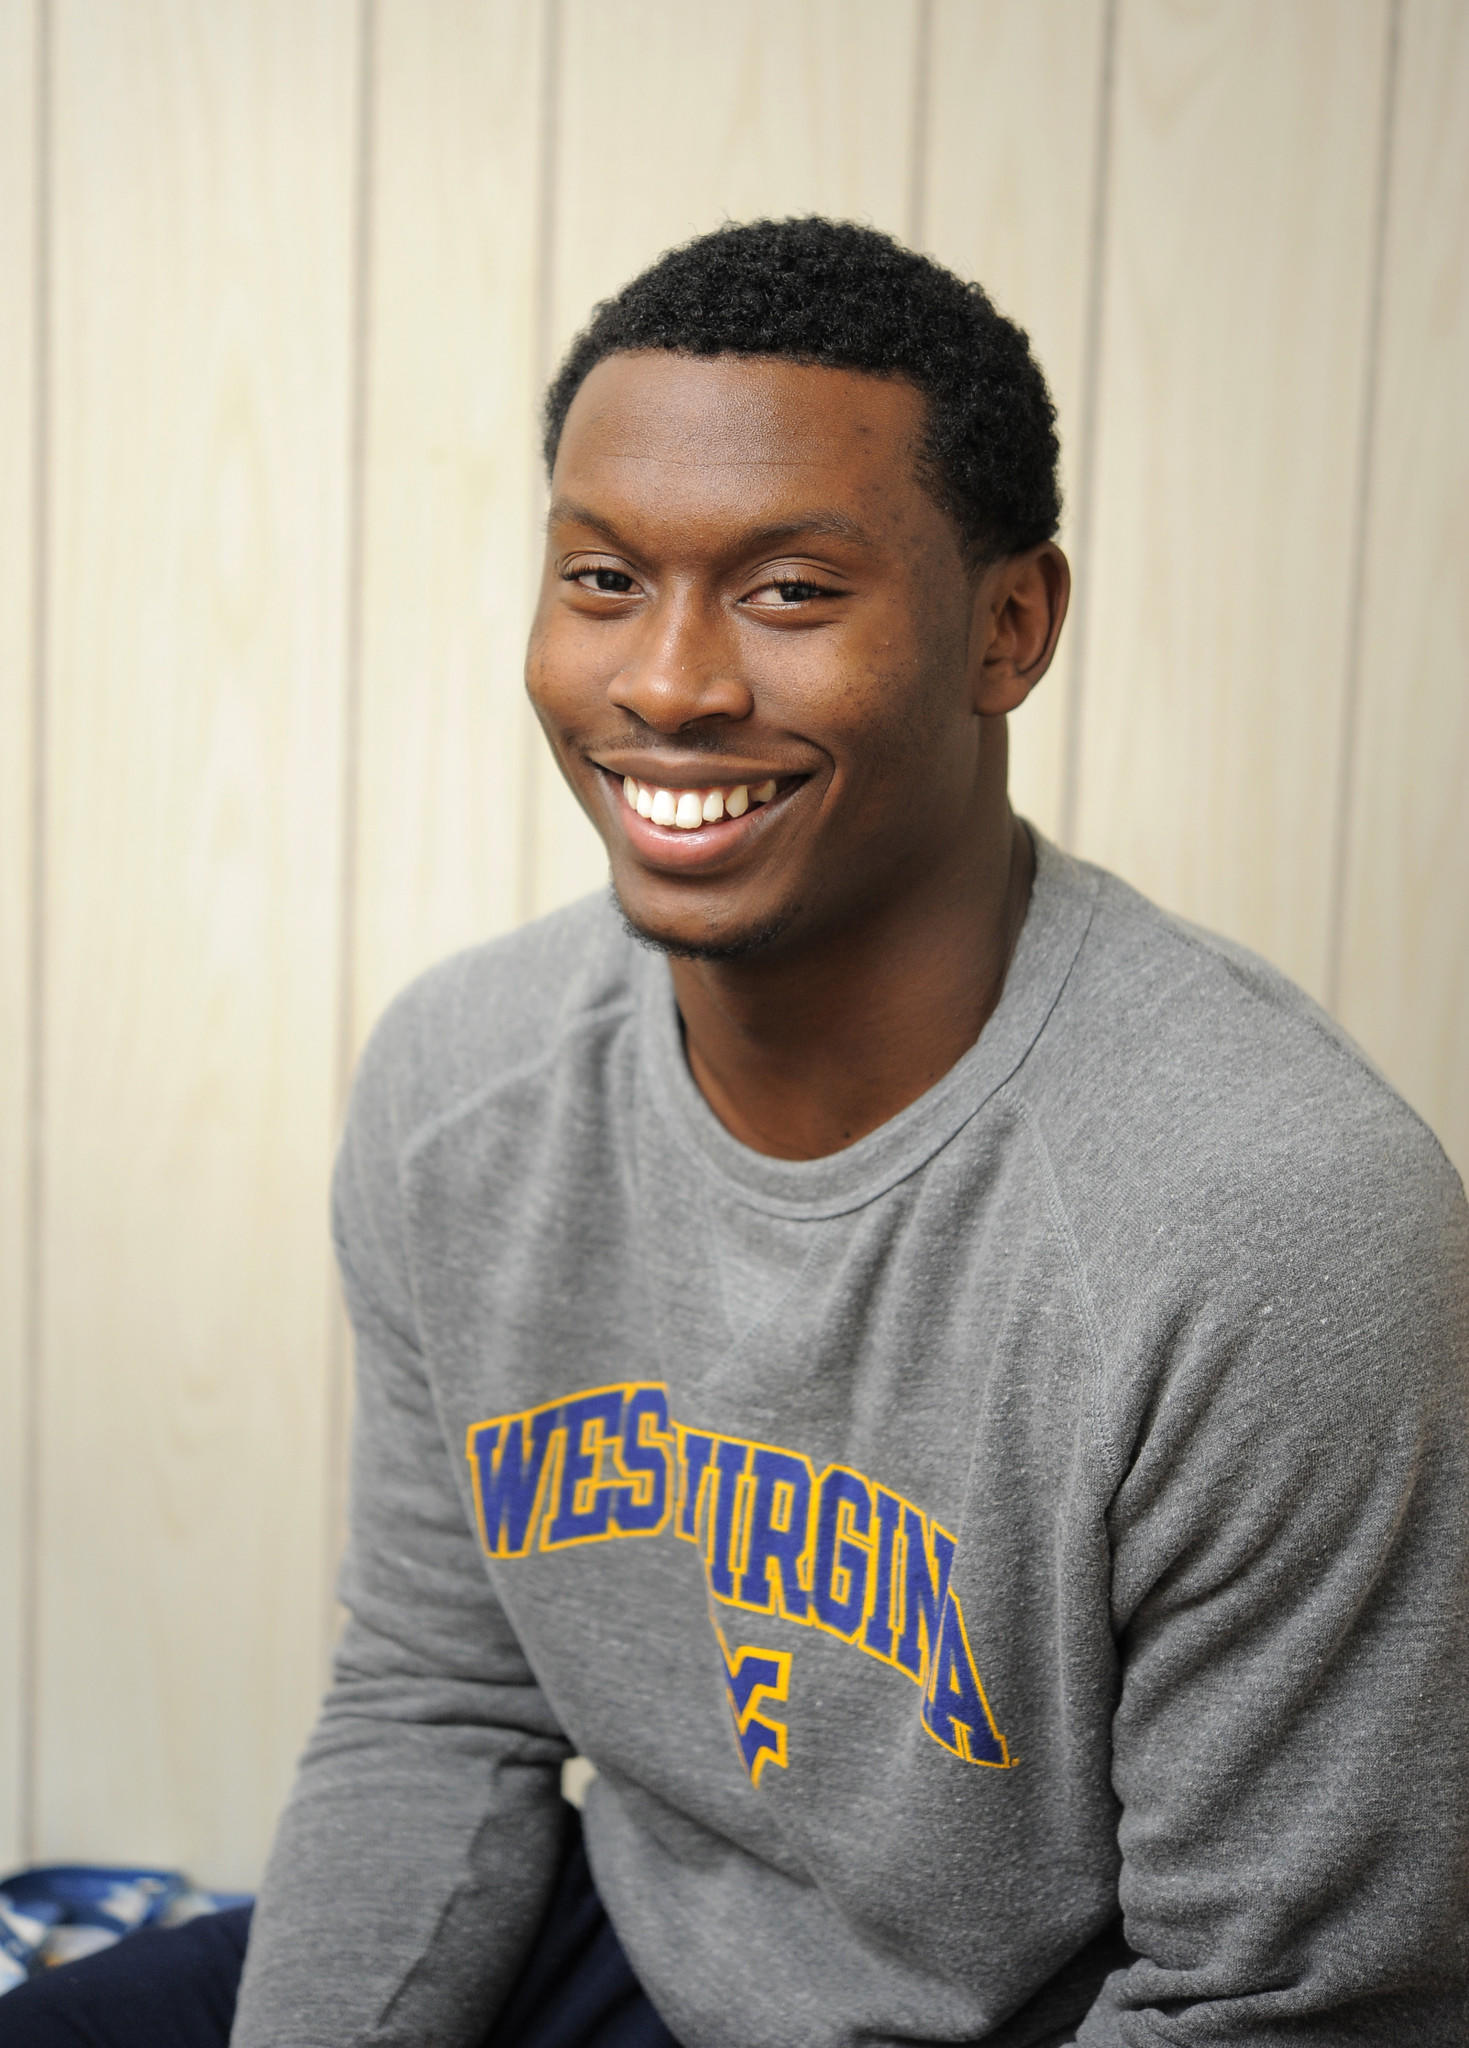 Dunbar quarterback William Crest committed to play football at West Virginia.